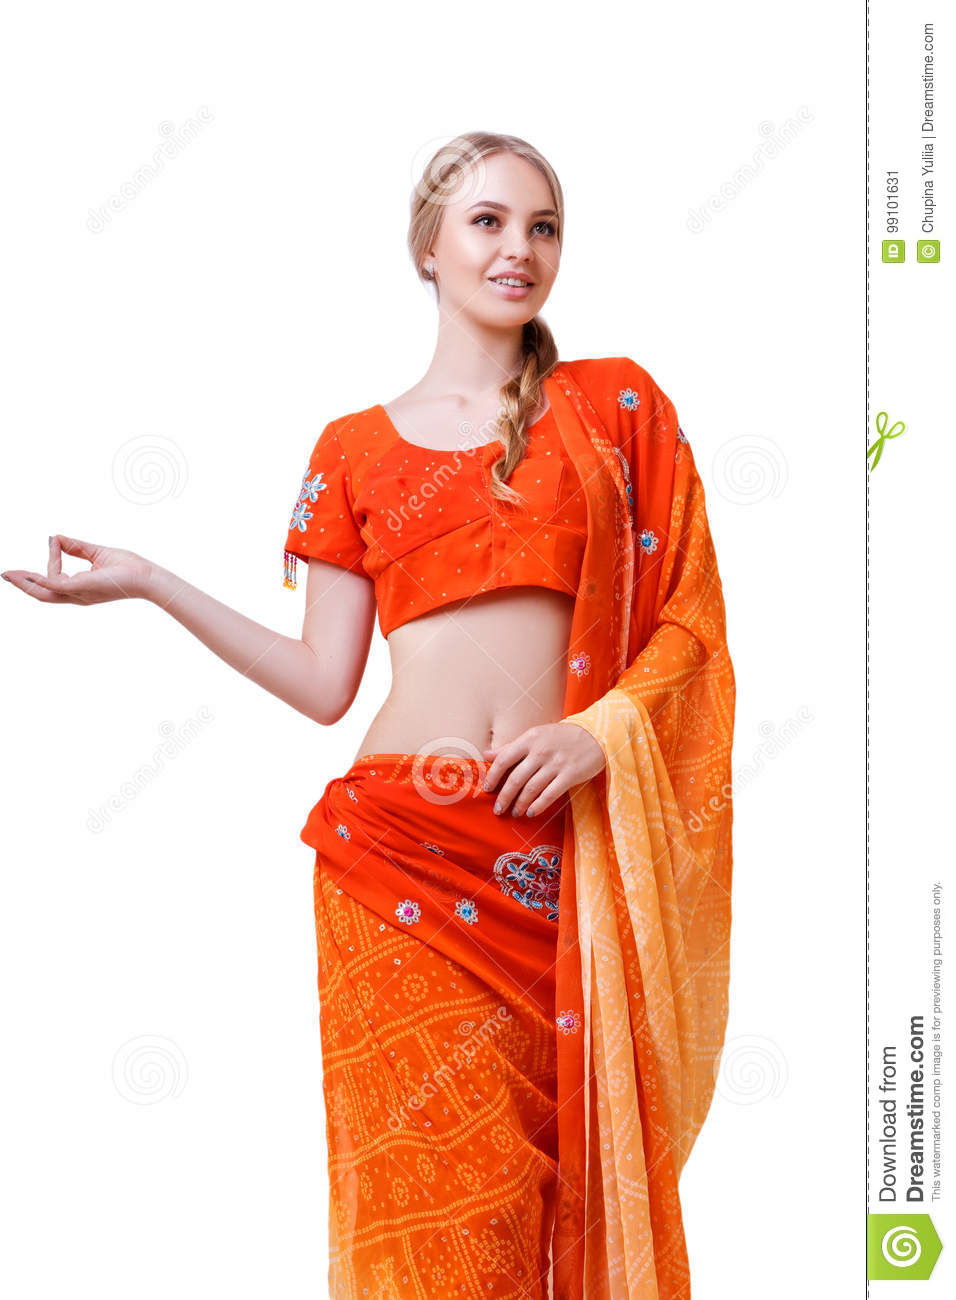 95e593d6b2 Caucasian blonde smiling girl in red indian national dress sari in studio  on white background isolated